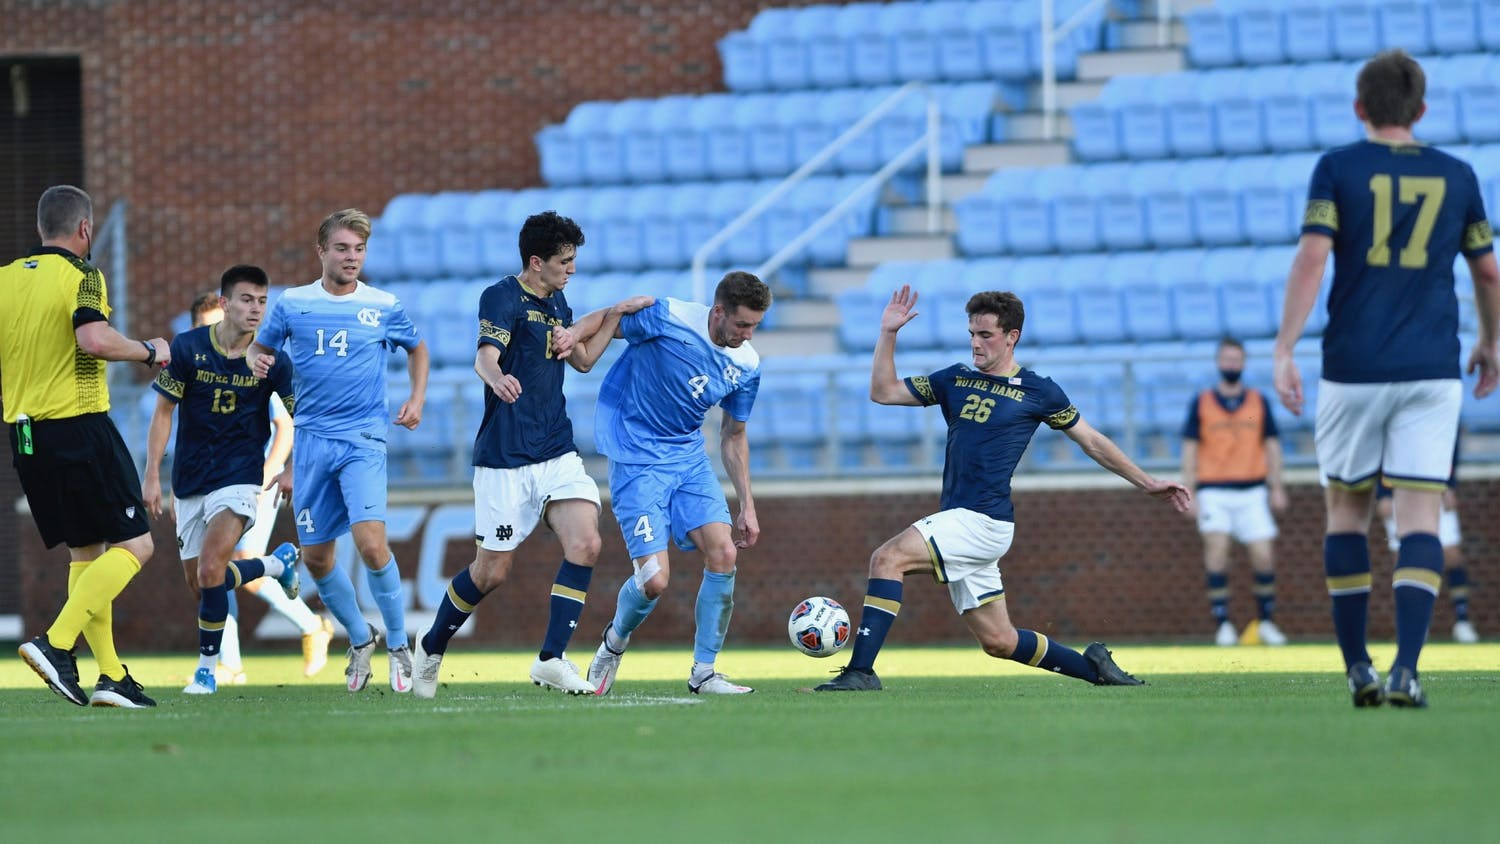 UNC's men's soccer team faced off against Notre Dame in the first round of the ACC tournament on Sunday, Nov. 14, 2020 in Dorrance Field. UNC fell to Notre Dame 1-0. Photo courtesy of Dana Gentry for UNC Athletic Communications.